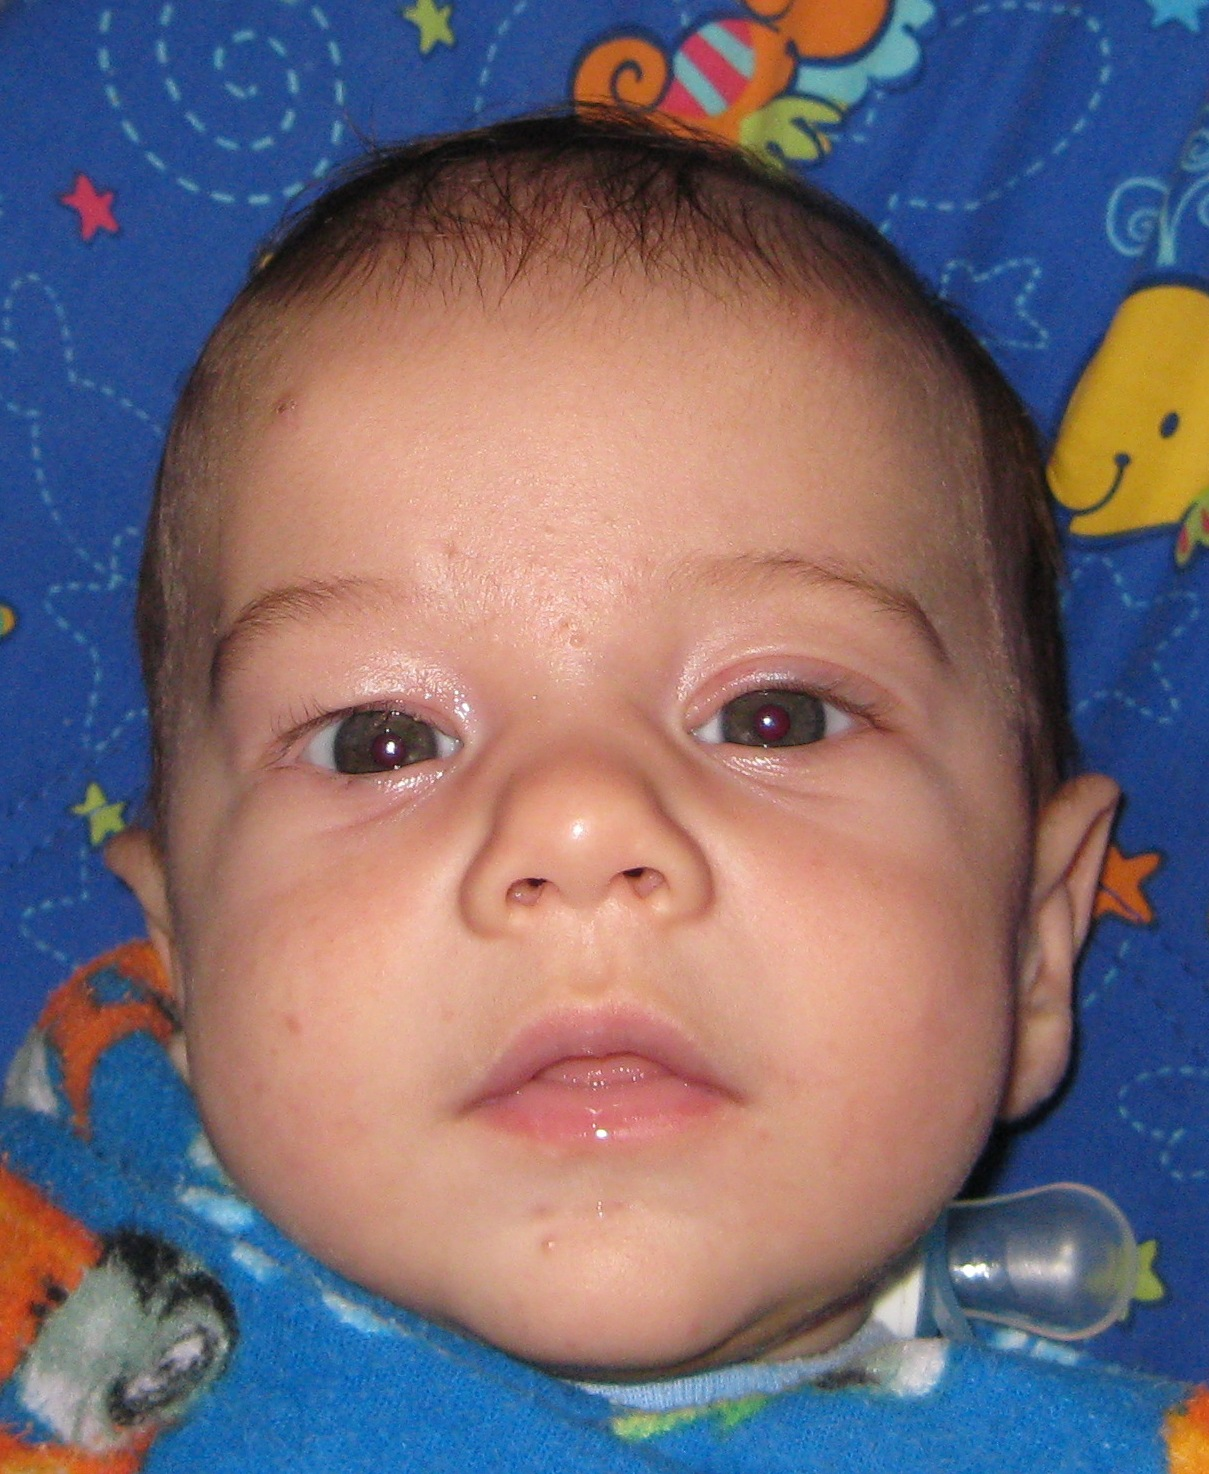 Congential Ptosis and Frontalis Sling Surgery: November 2008